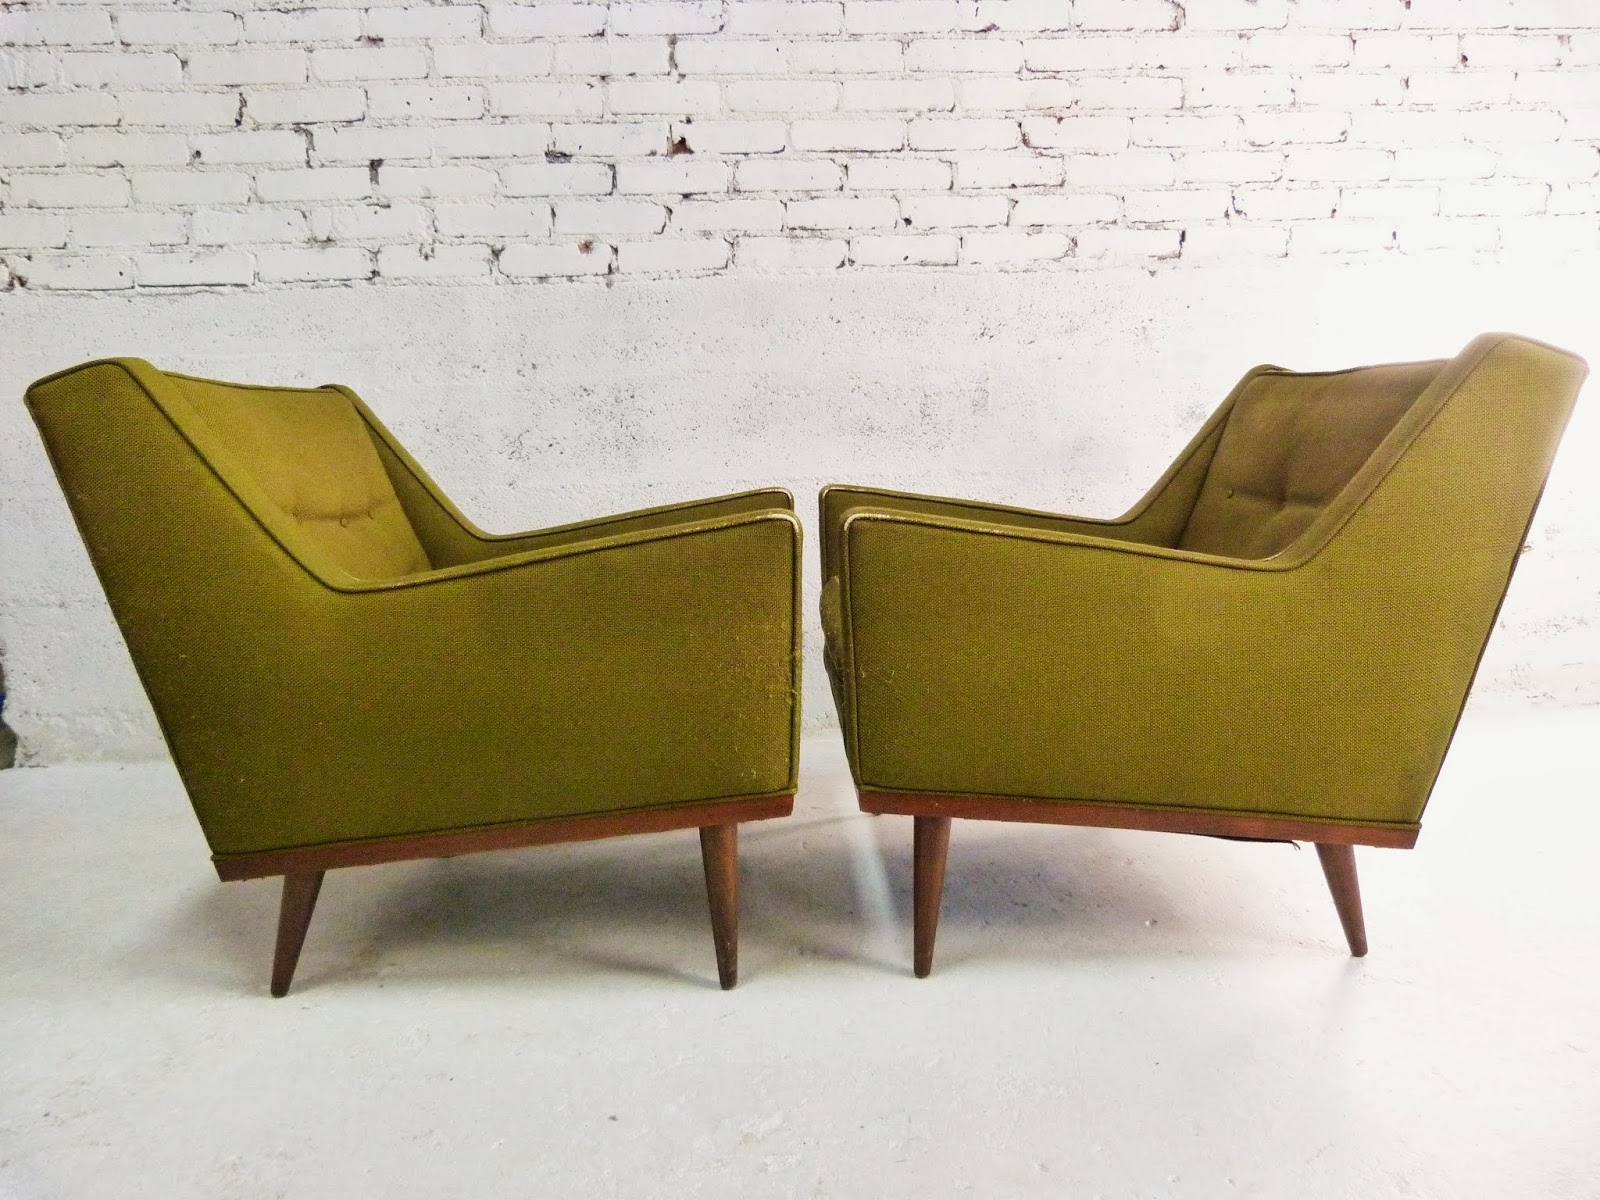 Vintage bill stephens for knoll bentwood conference office side chairs